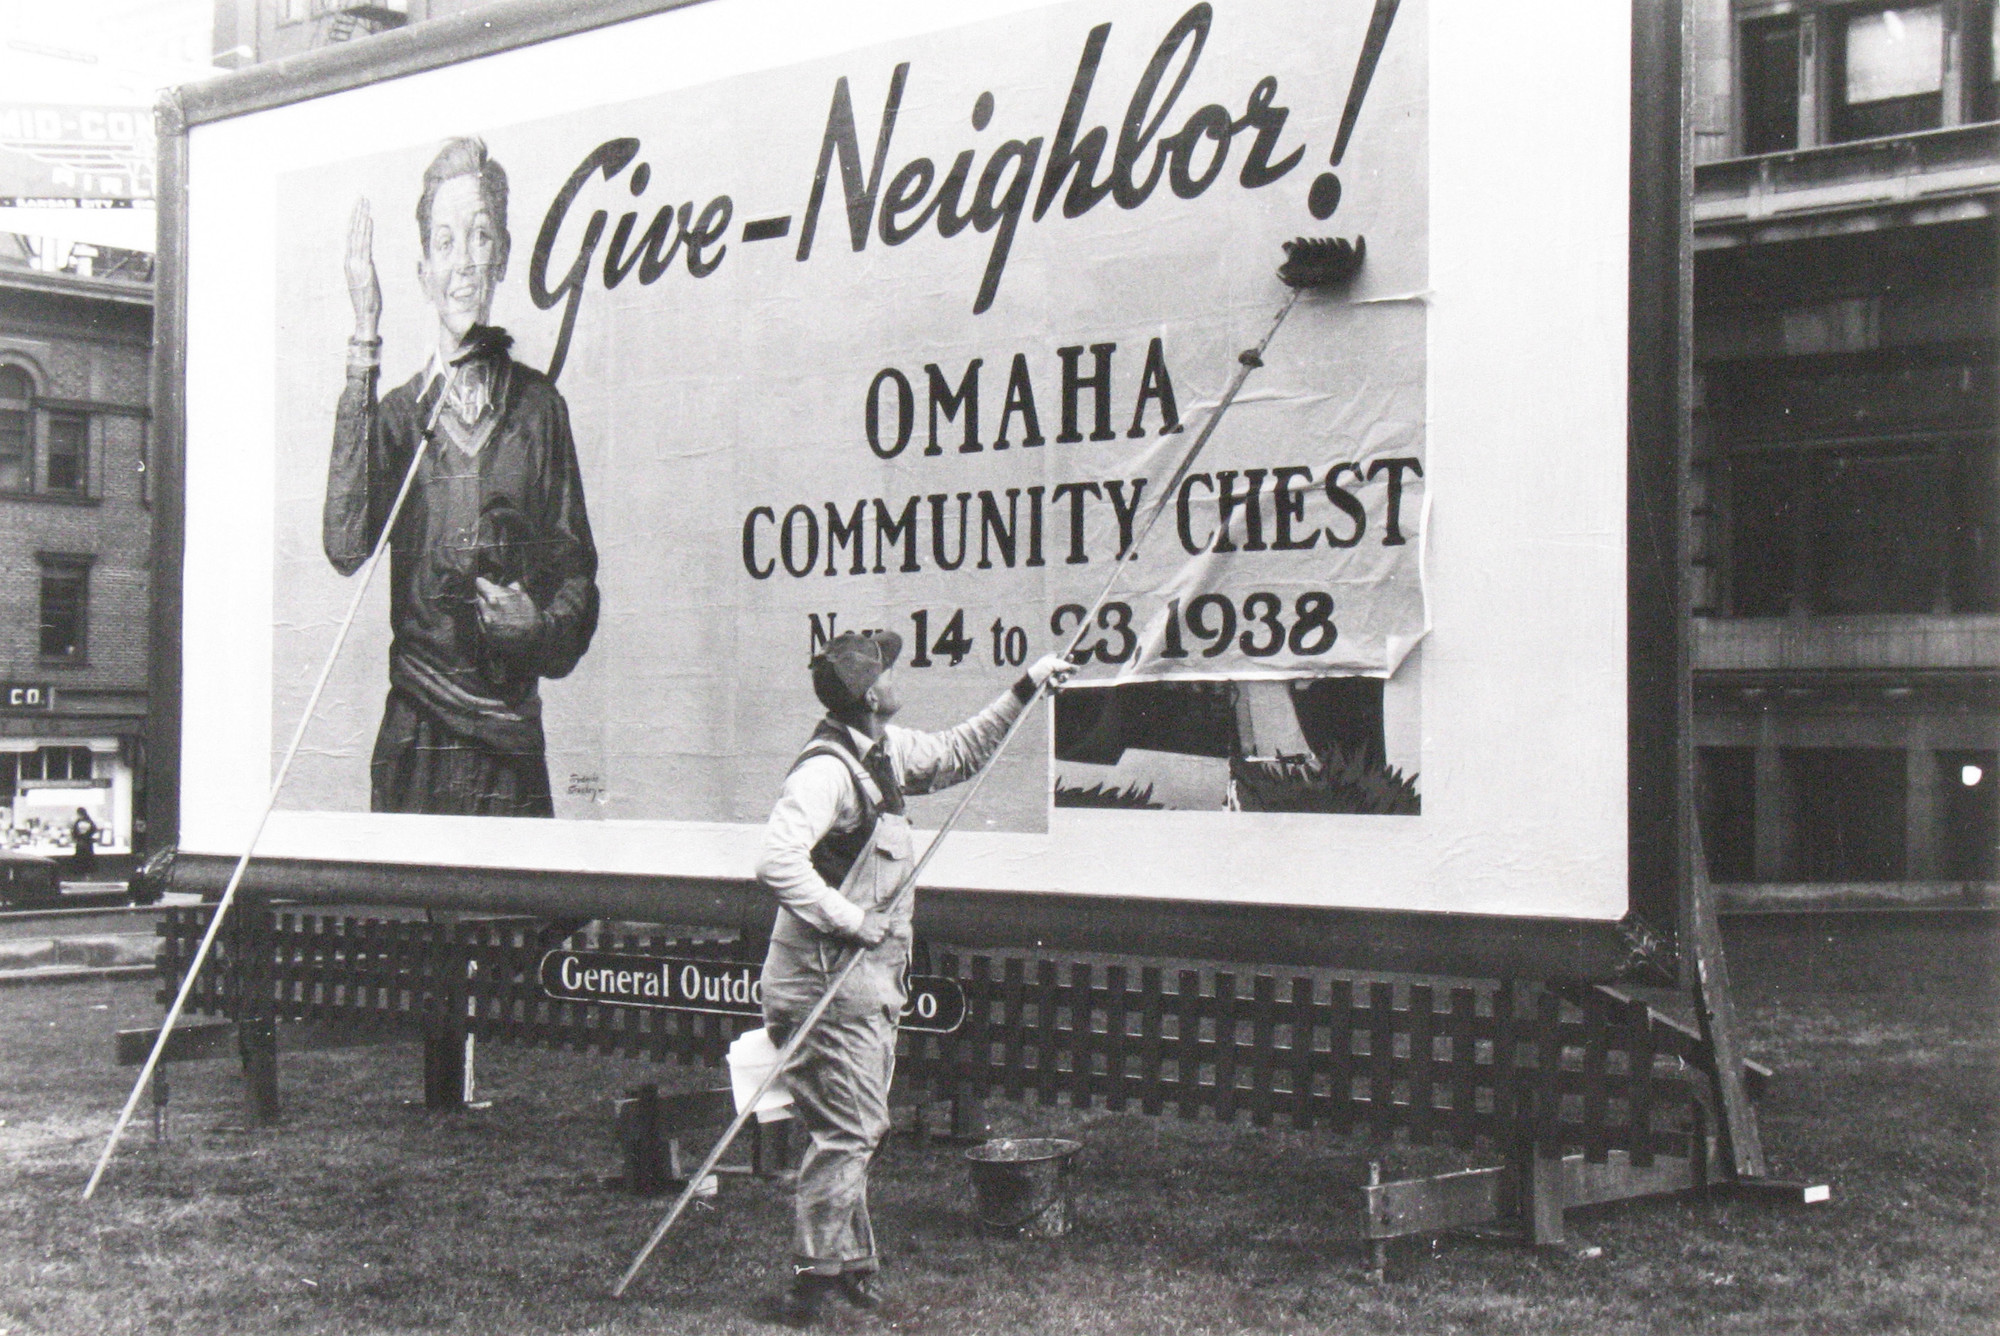 John Vachon. Billboard on the Courthouse Lawn, Omaha, Nebraska. 1938